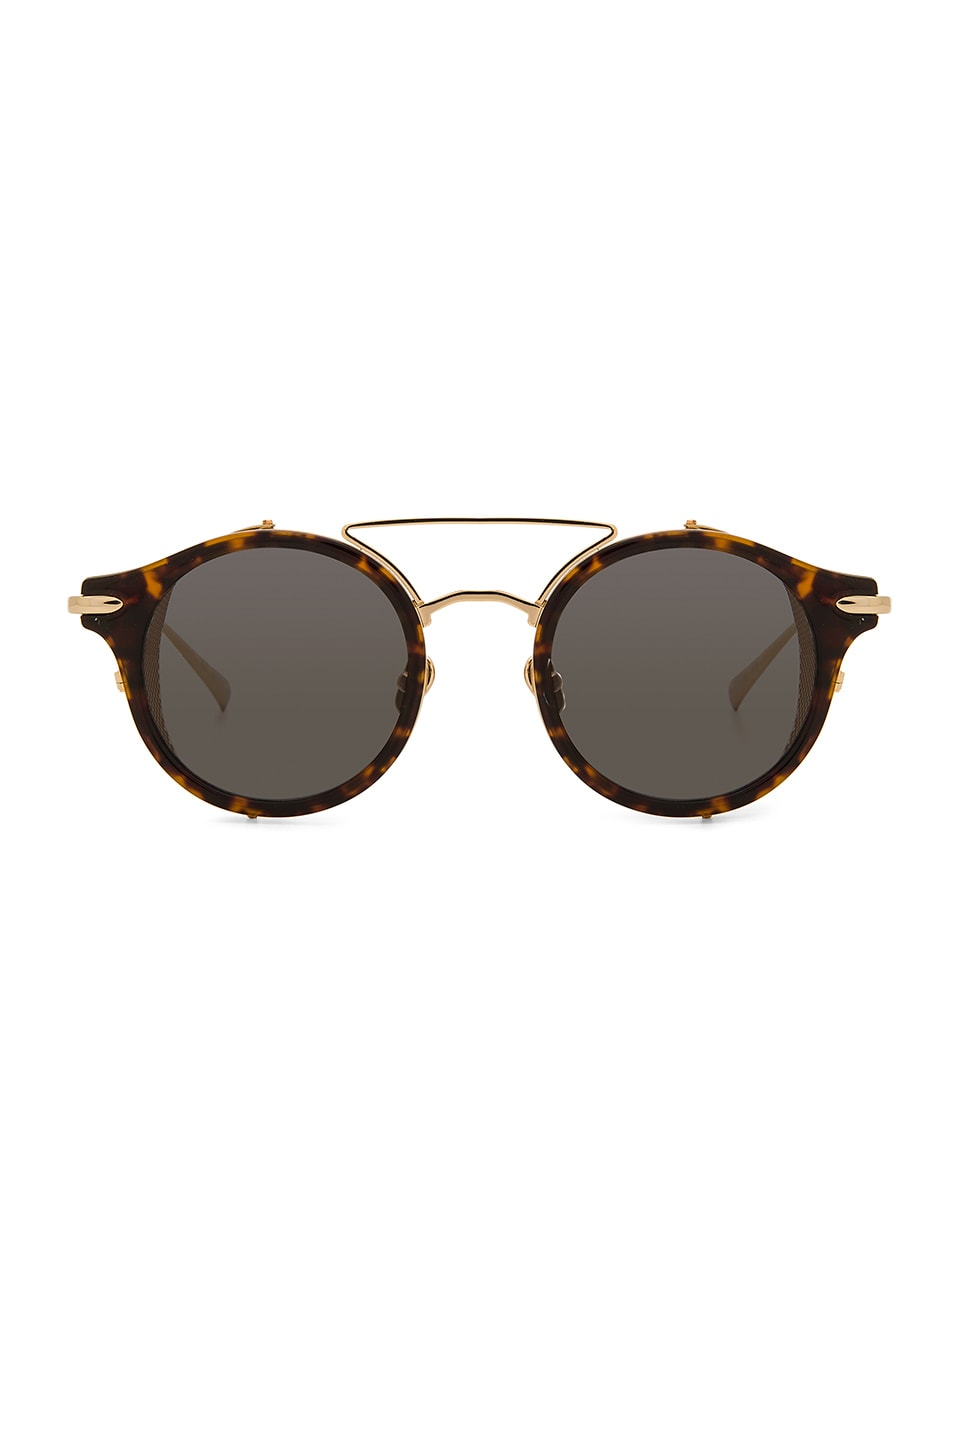 Hadid Eyewear Mile High in Tortoise & Gold